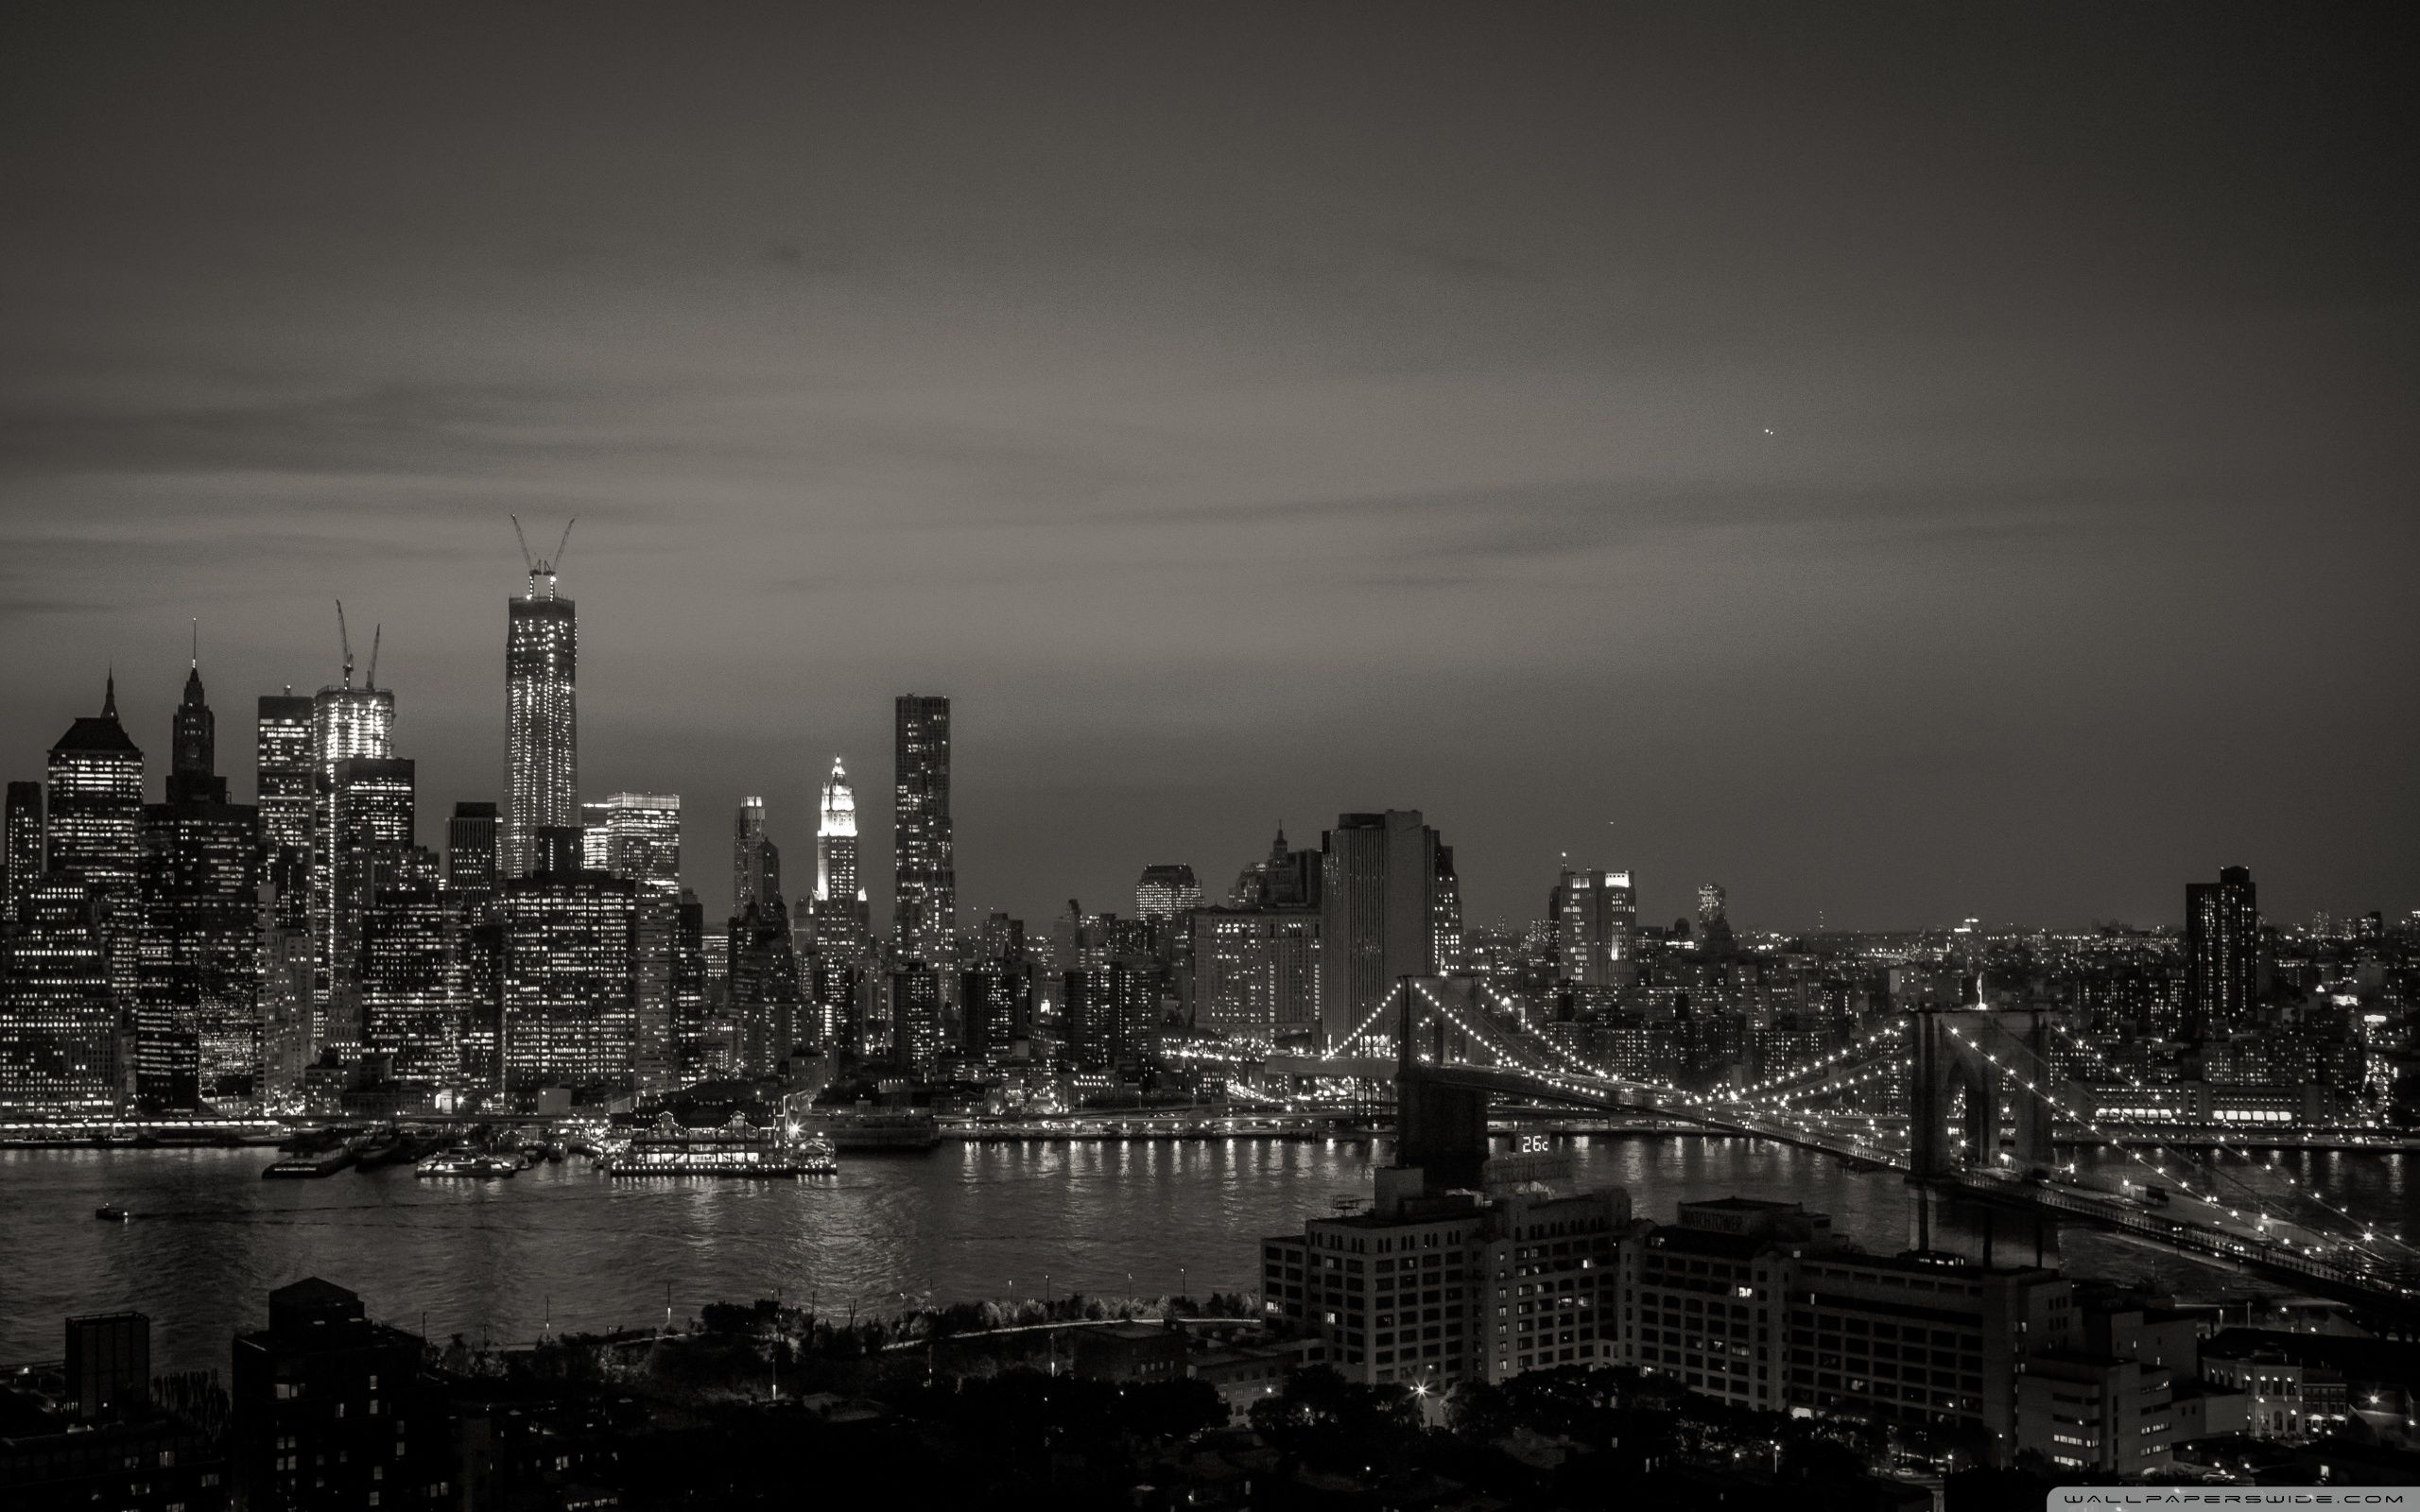 Black And White Hd Desktop Wallpapers For Mac Backgrounds New York Wallpaper Desktop Wallpaper Black